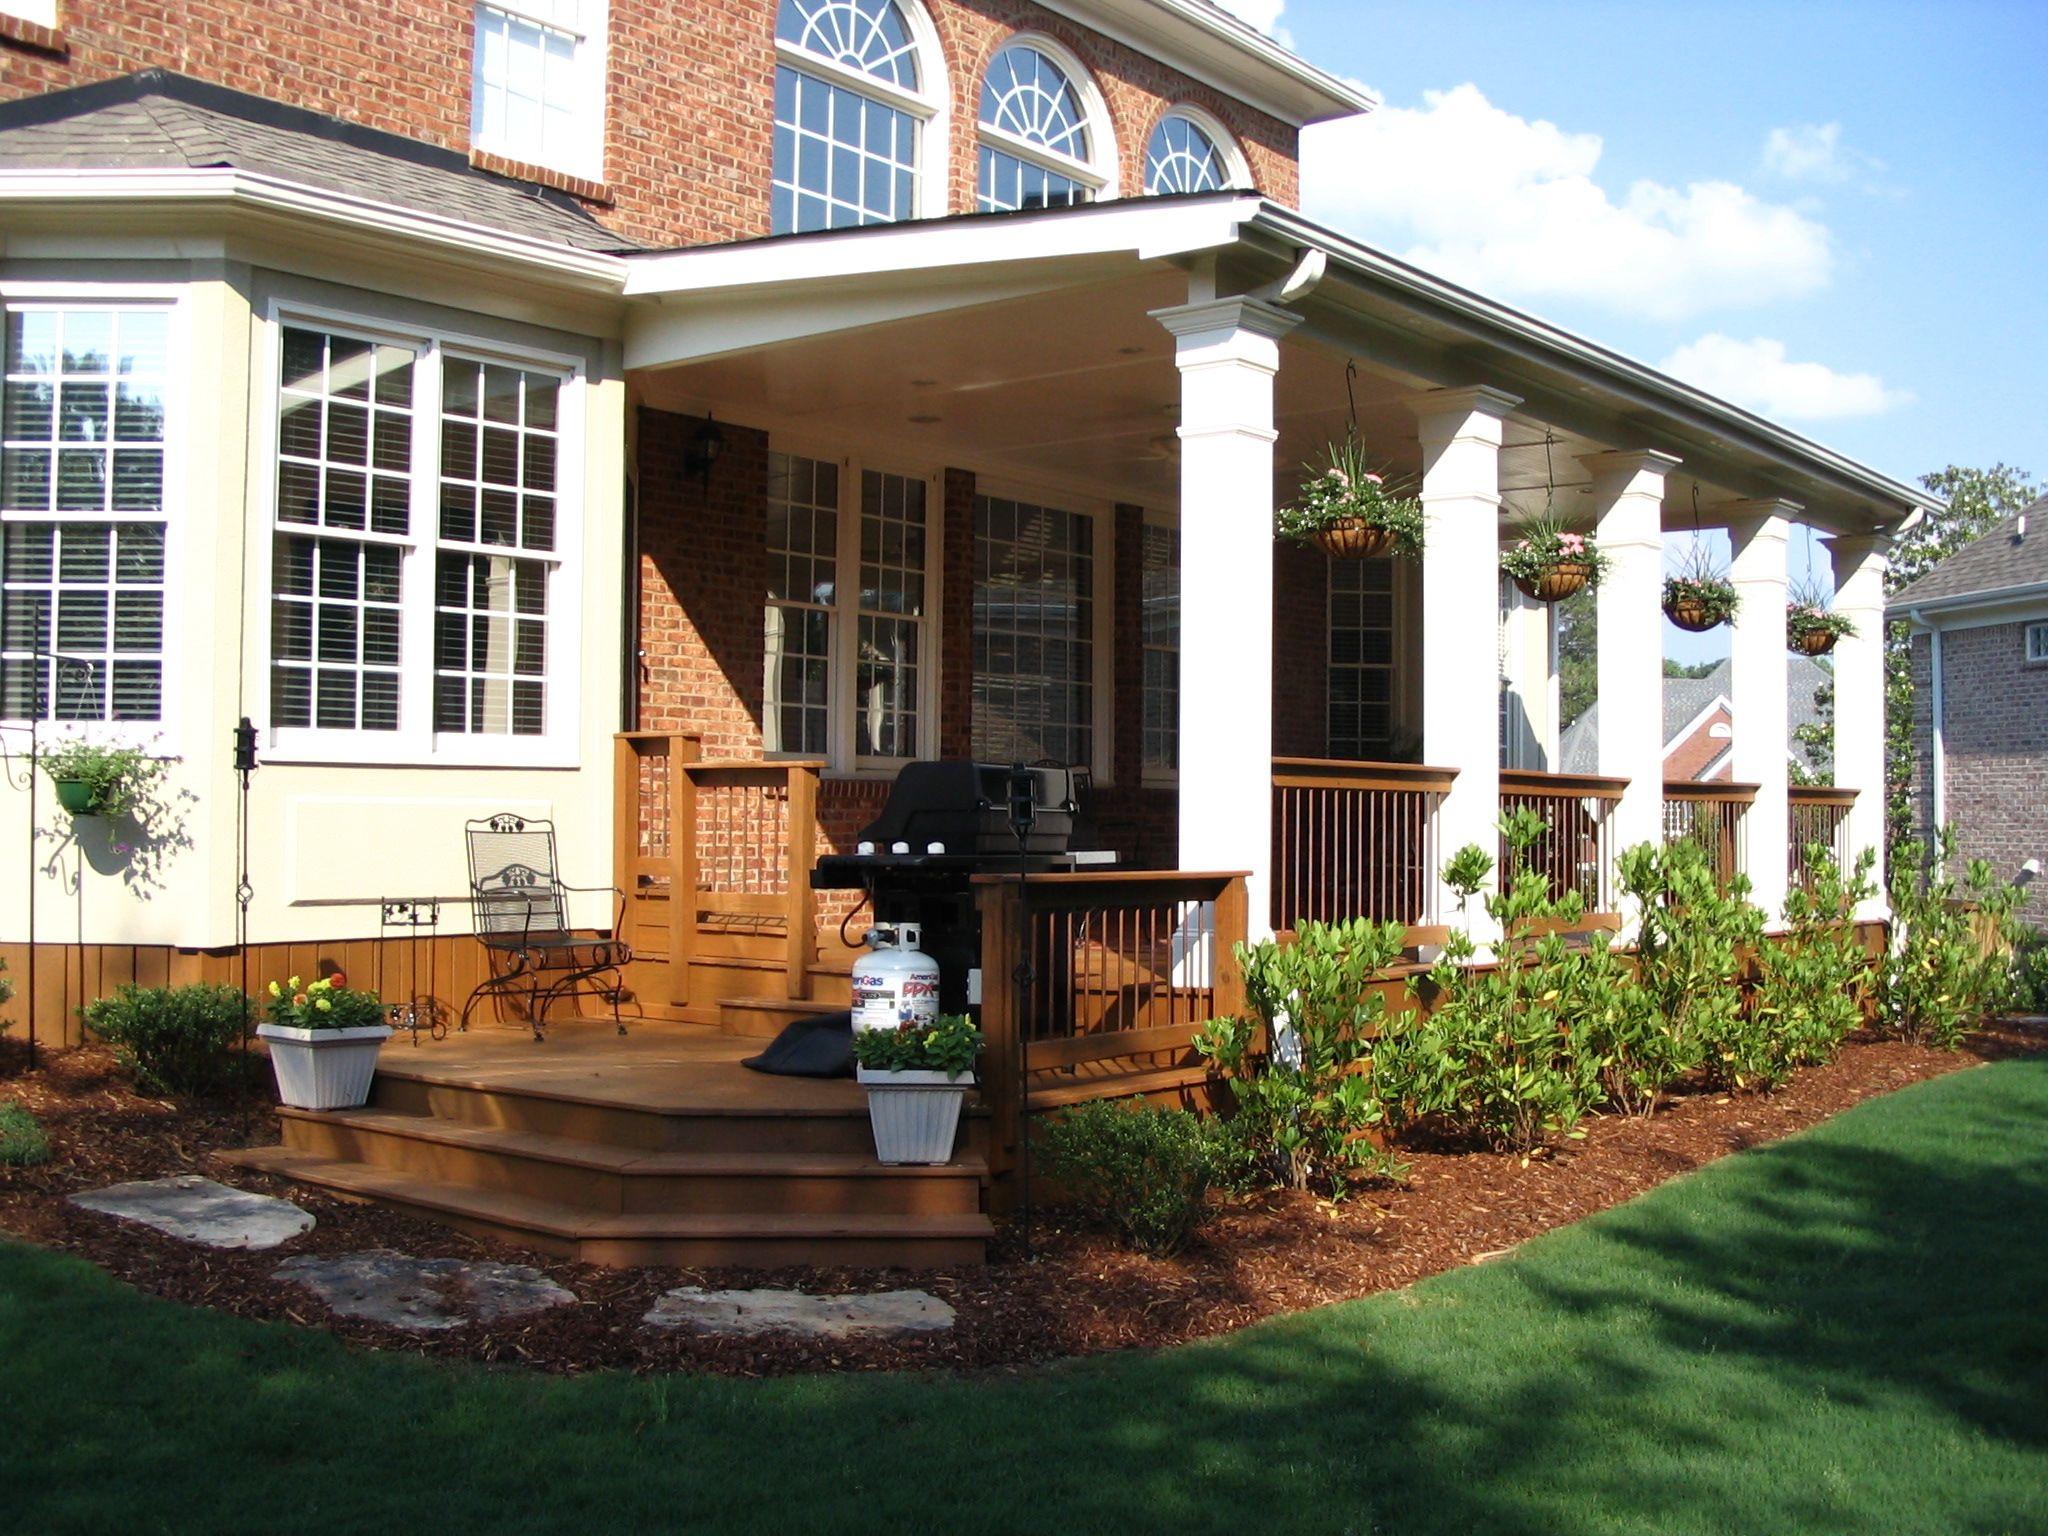 a nice expansive open back porch with square columns set off this